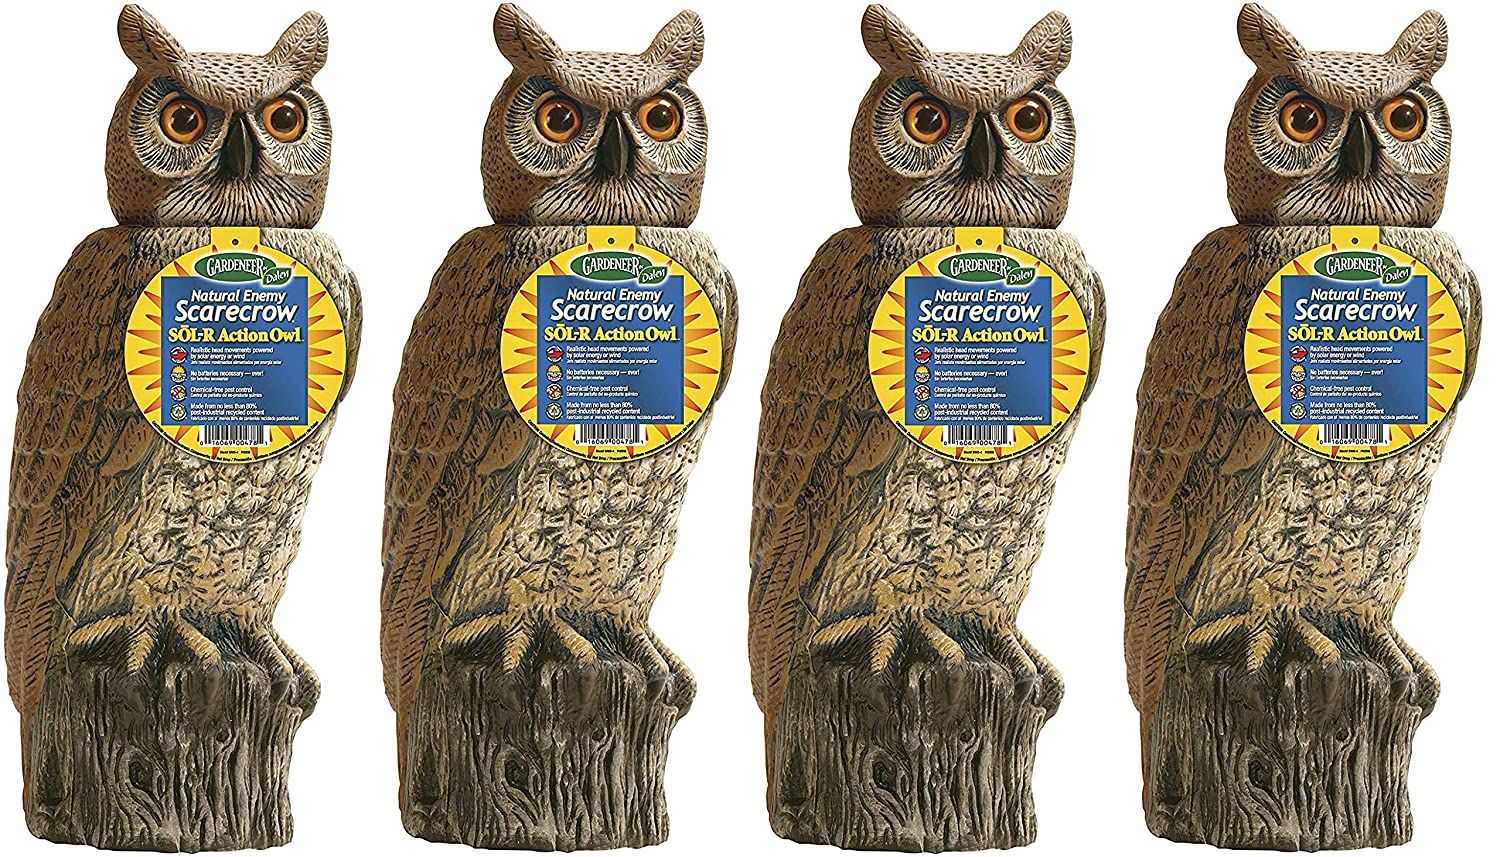 Amazon.com : Gardeneer by Dalen Solar Action Owl Natural Scarecrow Device, 18in (Pack of 4) : Garden & Outdoor